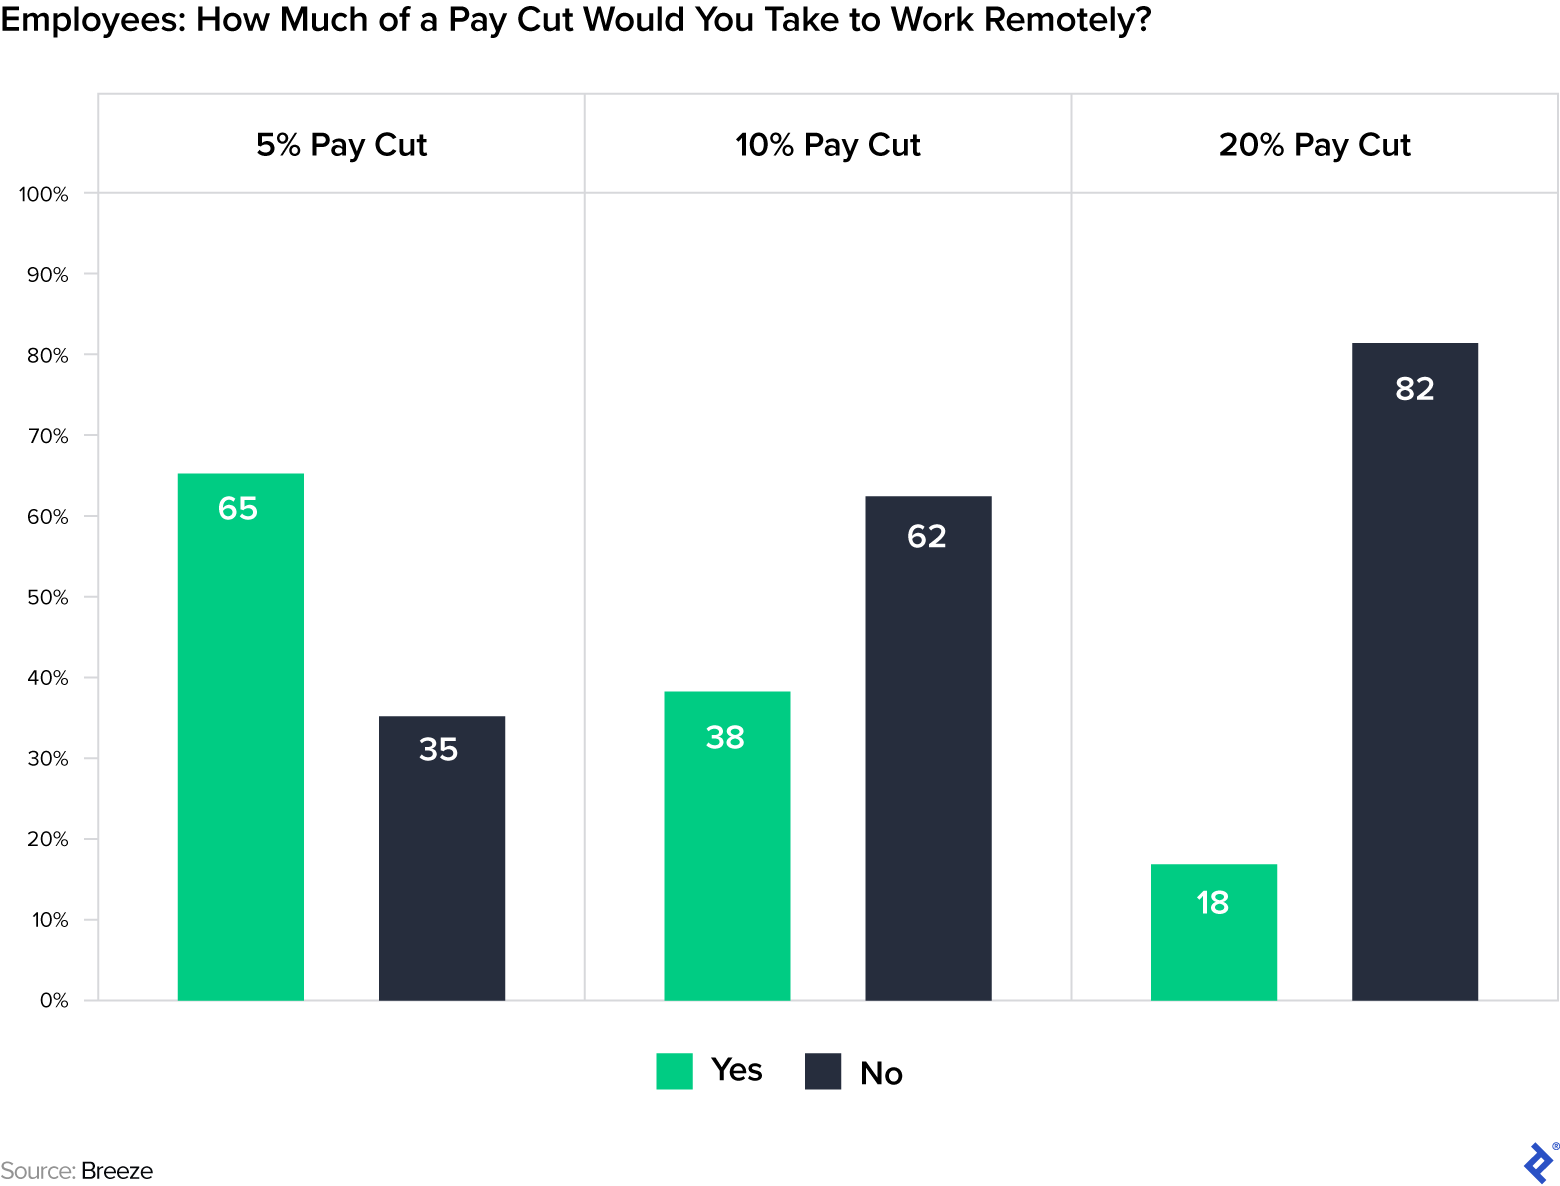 Employees: How much of a pay cut would you take to work remotely? 65% would take a 5% pay cut; 38% would take a 10% pay cut; and 18% would take a 20% pay cut.